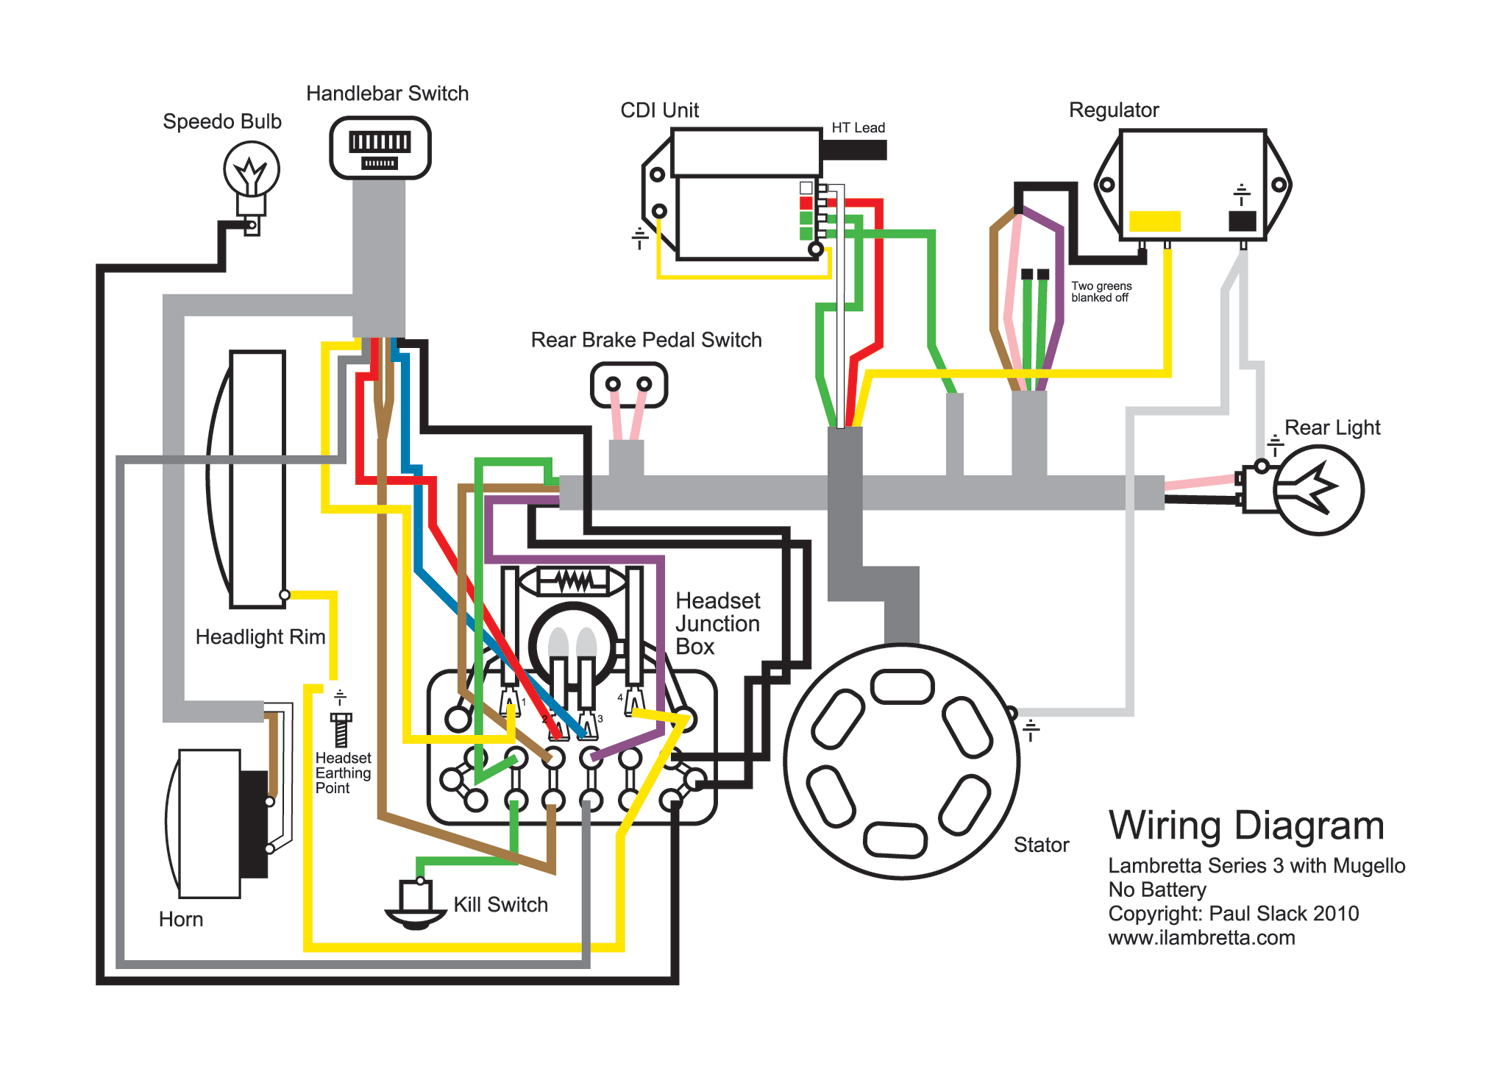 Evinrude Key Switch Wiring Diagram - Wiring Diagram Detailed on mercruiser tilt trim wiring diagram, ignition coil wiring diagram, starter solenoid wiring diagram, bass tracker electrical wiring diagram, johnson outboard parts diagram, hp mercury outboard wiring diagram, universal ignition switch diagram, mercruiser 3.0 parts diagram, johnson wiring harness diagram, basic switch diagram, 50 hp force outboard wiring diagram, outboard motor ignition switch diagram, evinrude switch diagram, johnson motor wiring diagram, johnson outboard wiring diagram, painless wiring diagram, omc key switch diagram, evinrude tachometer wiring diagram, mercruiser 3.0 carburetor diagram, outboard motor wiring diagram,